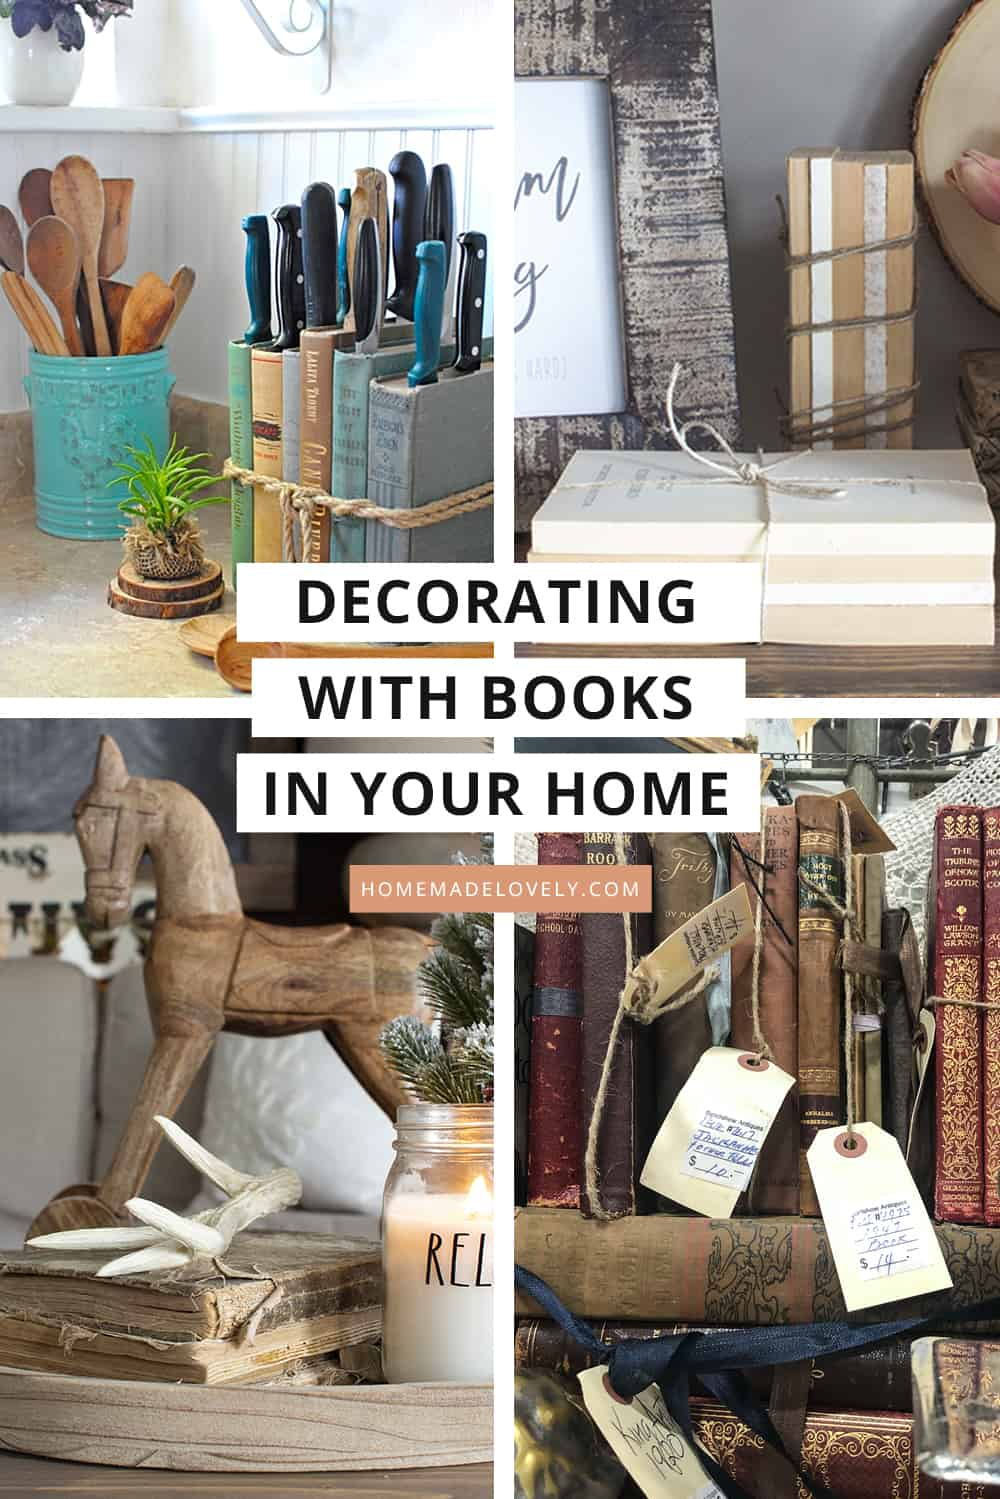 four photos showing books in home decor with text overlay